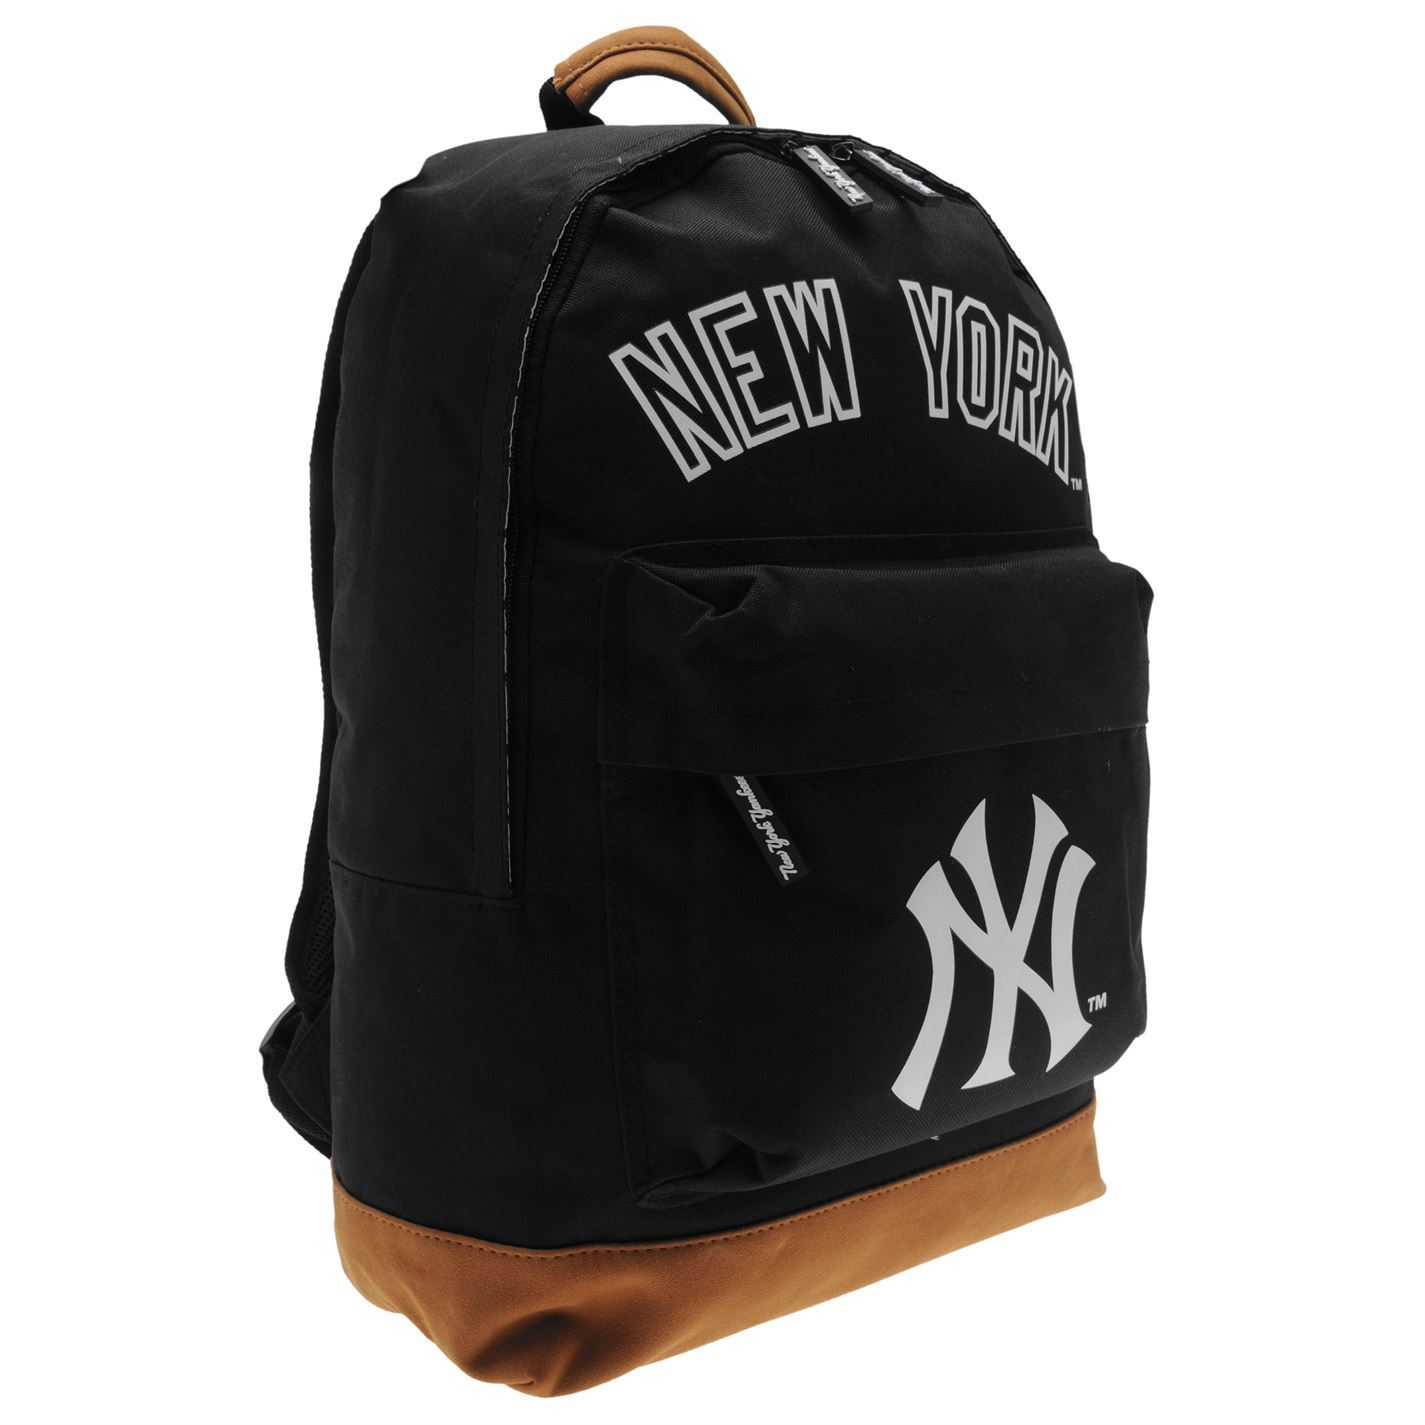 new york yankees backpack black logo bag rucksack holdall. Black Bedroom Furniture Sets. Home Design Ideas